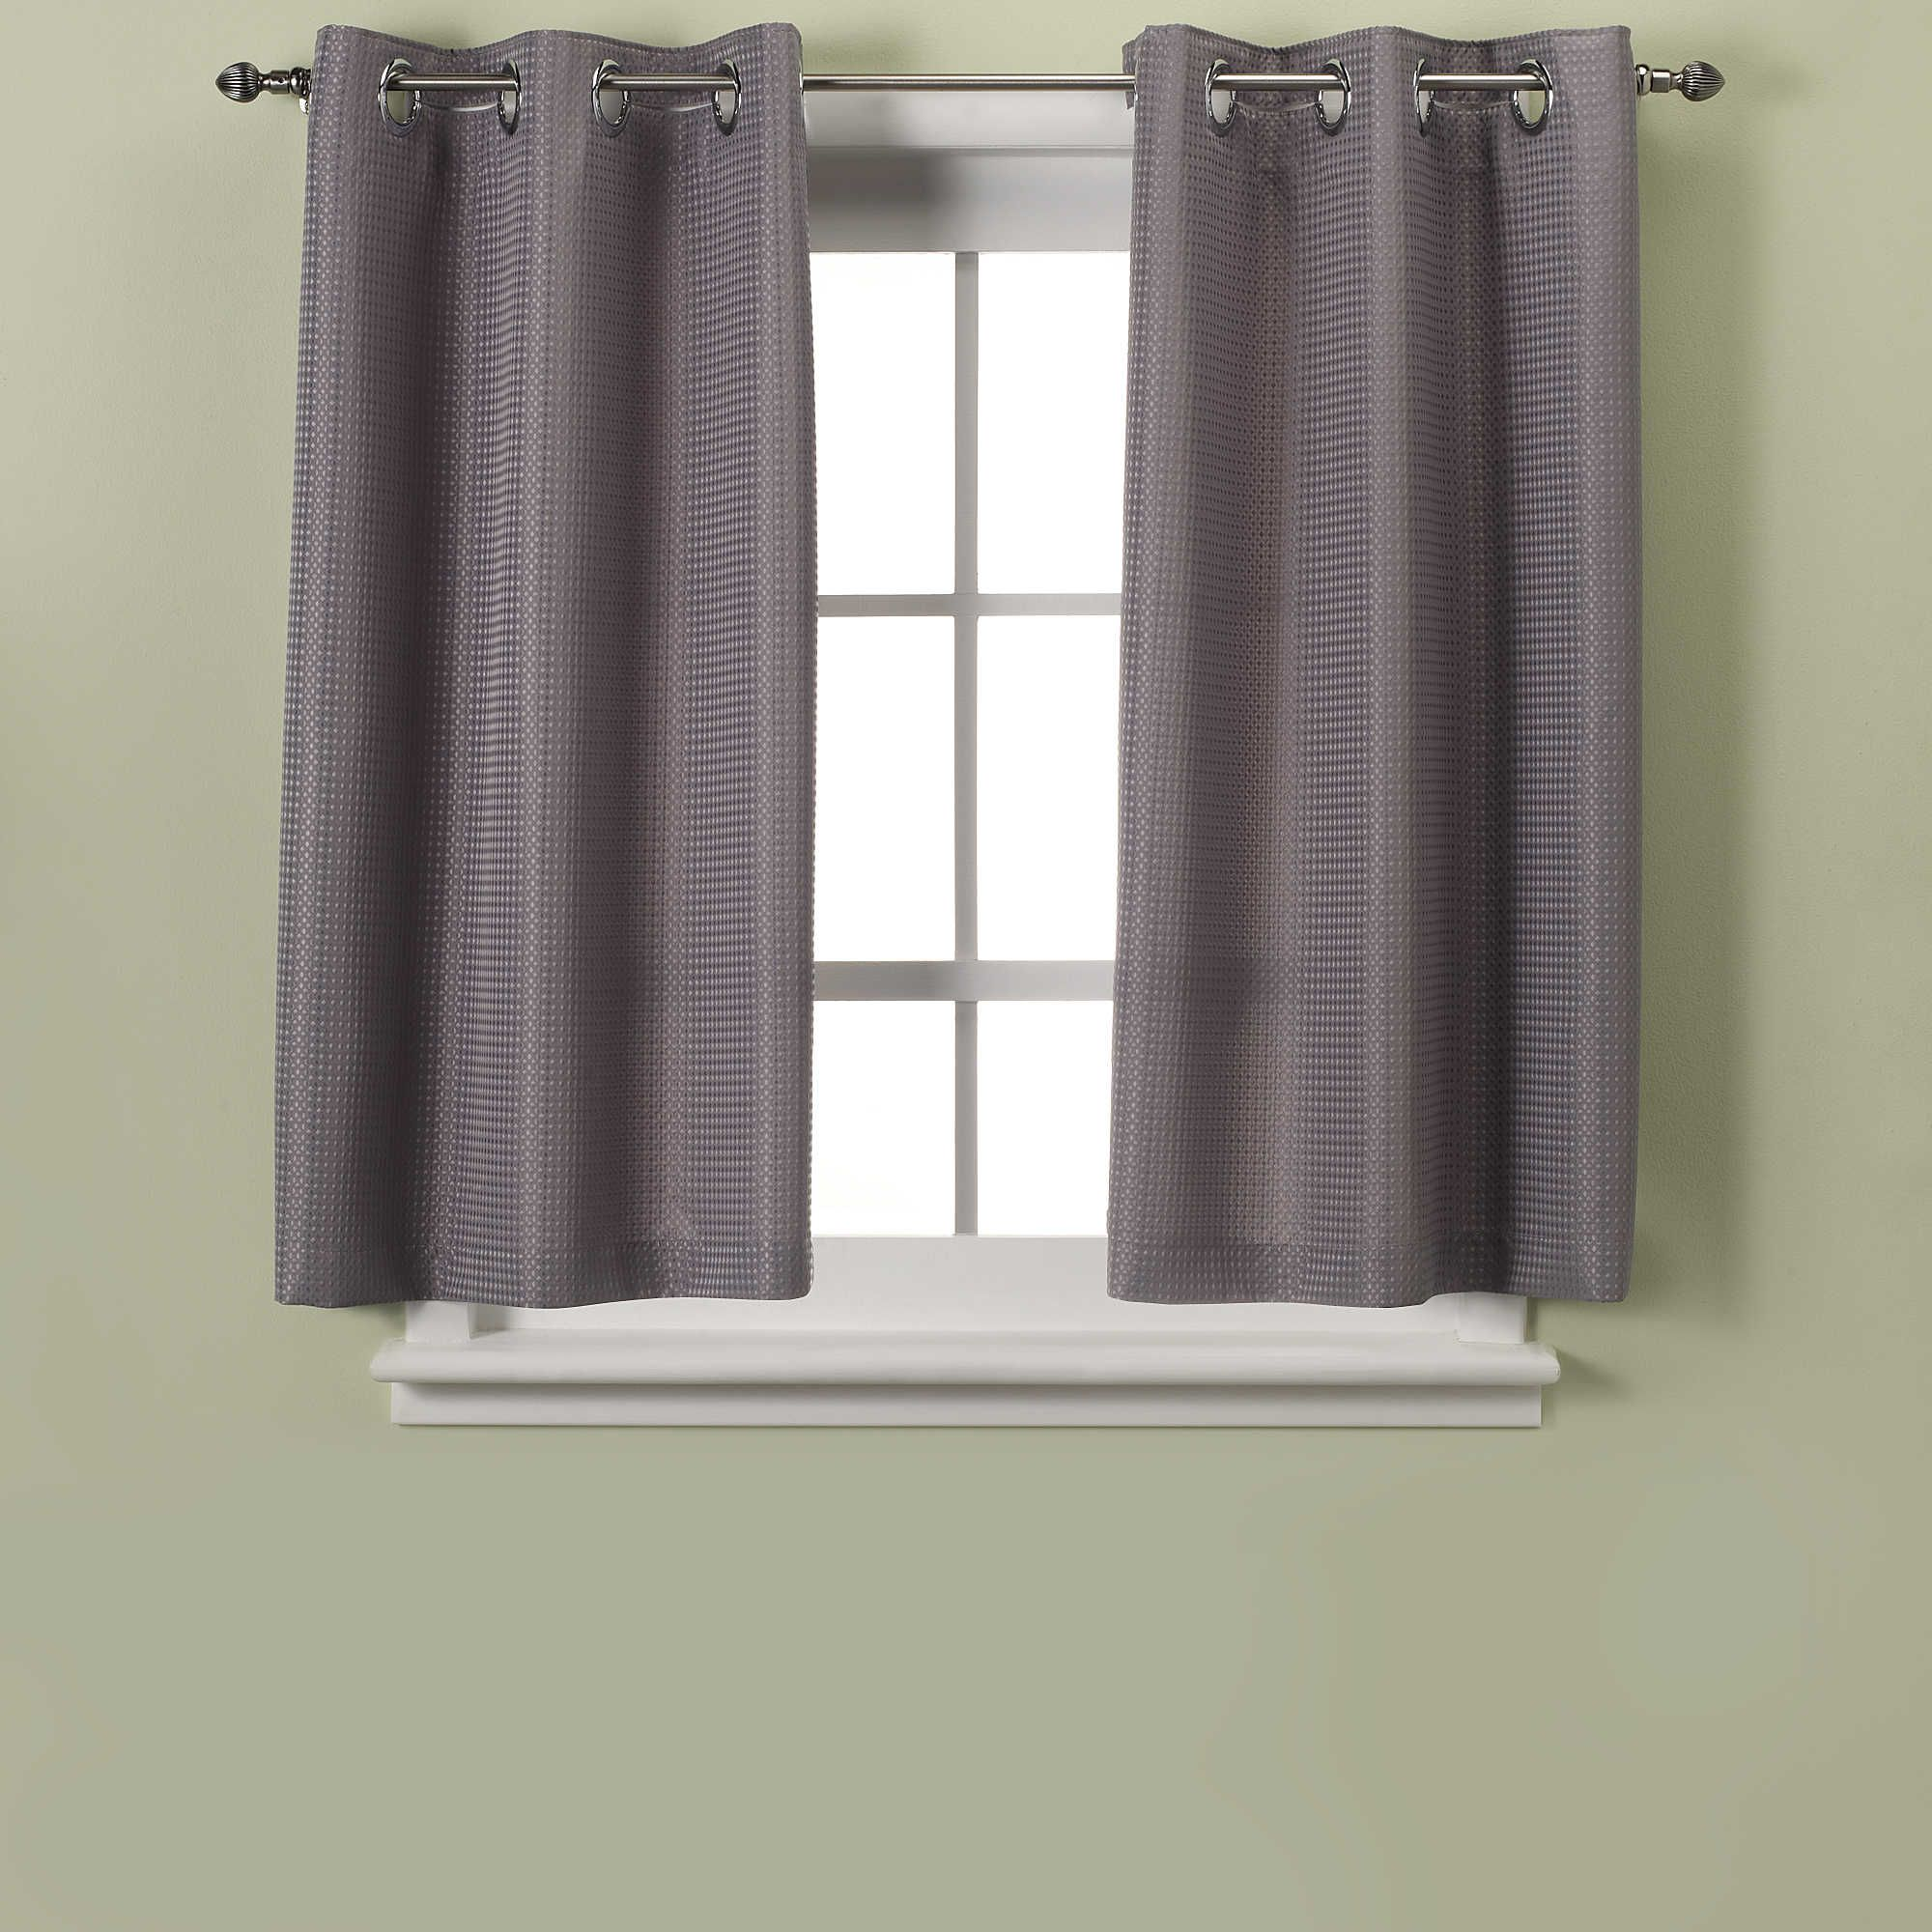 curtain avarii today curtains ideas home best blend panel shipping linen free inch design org classic